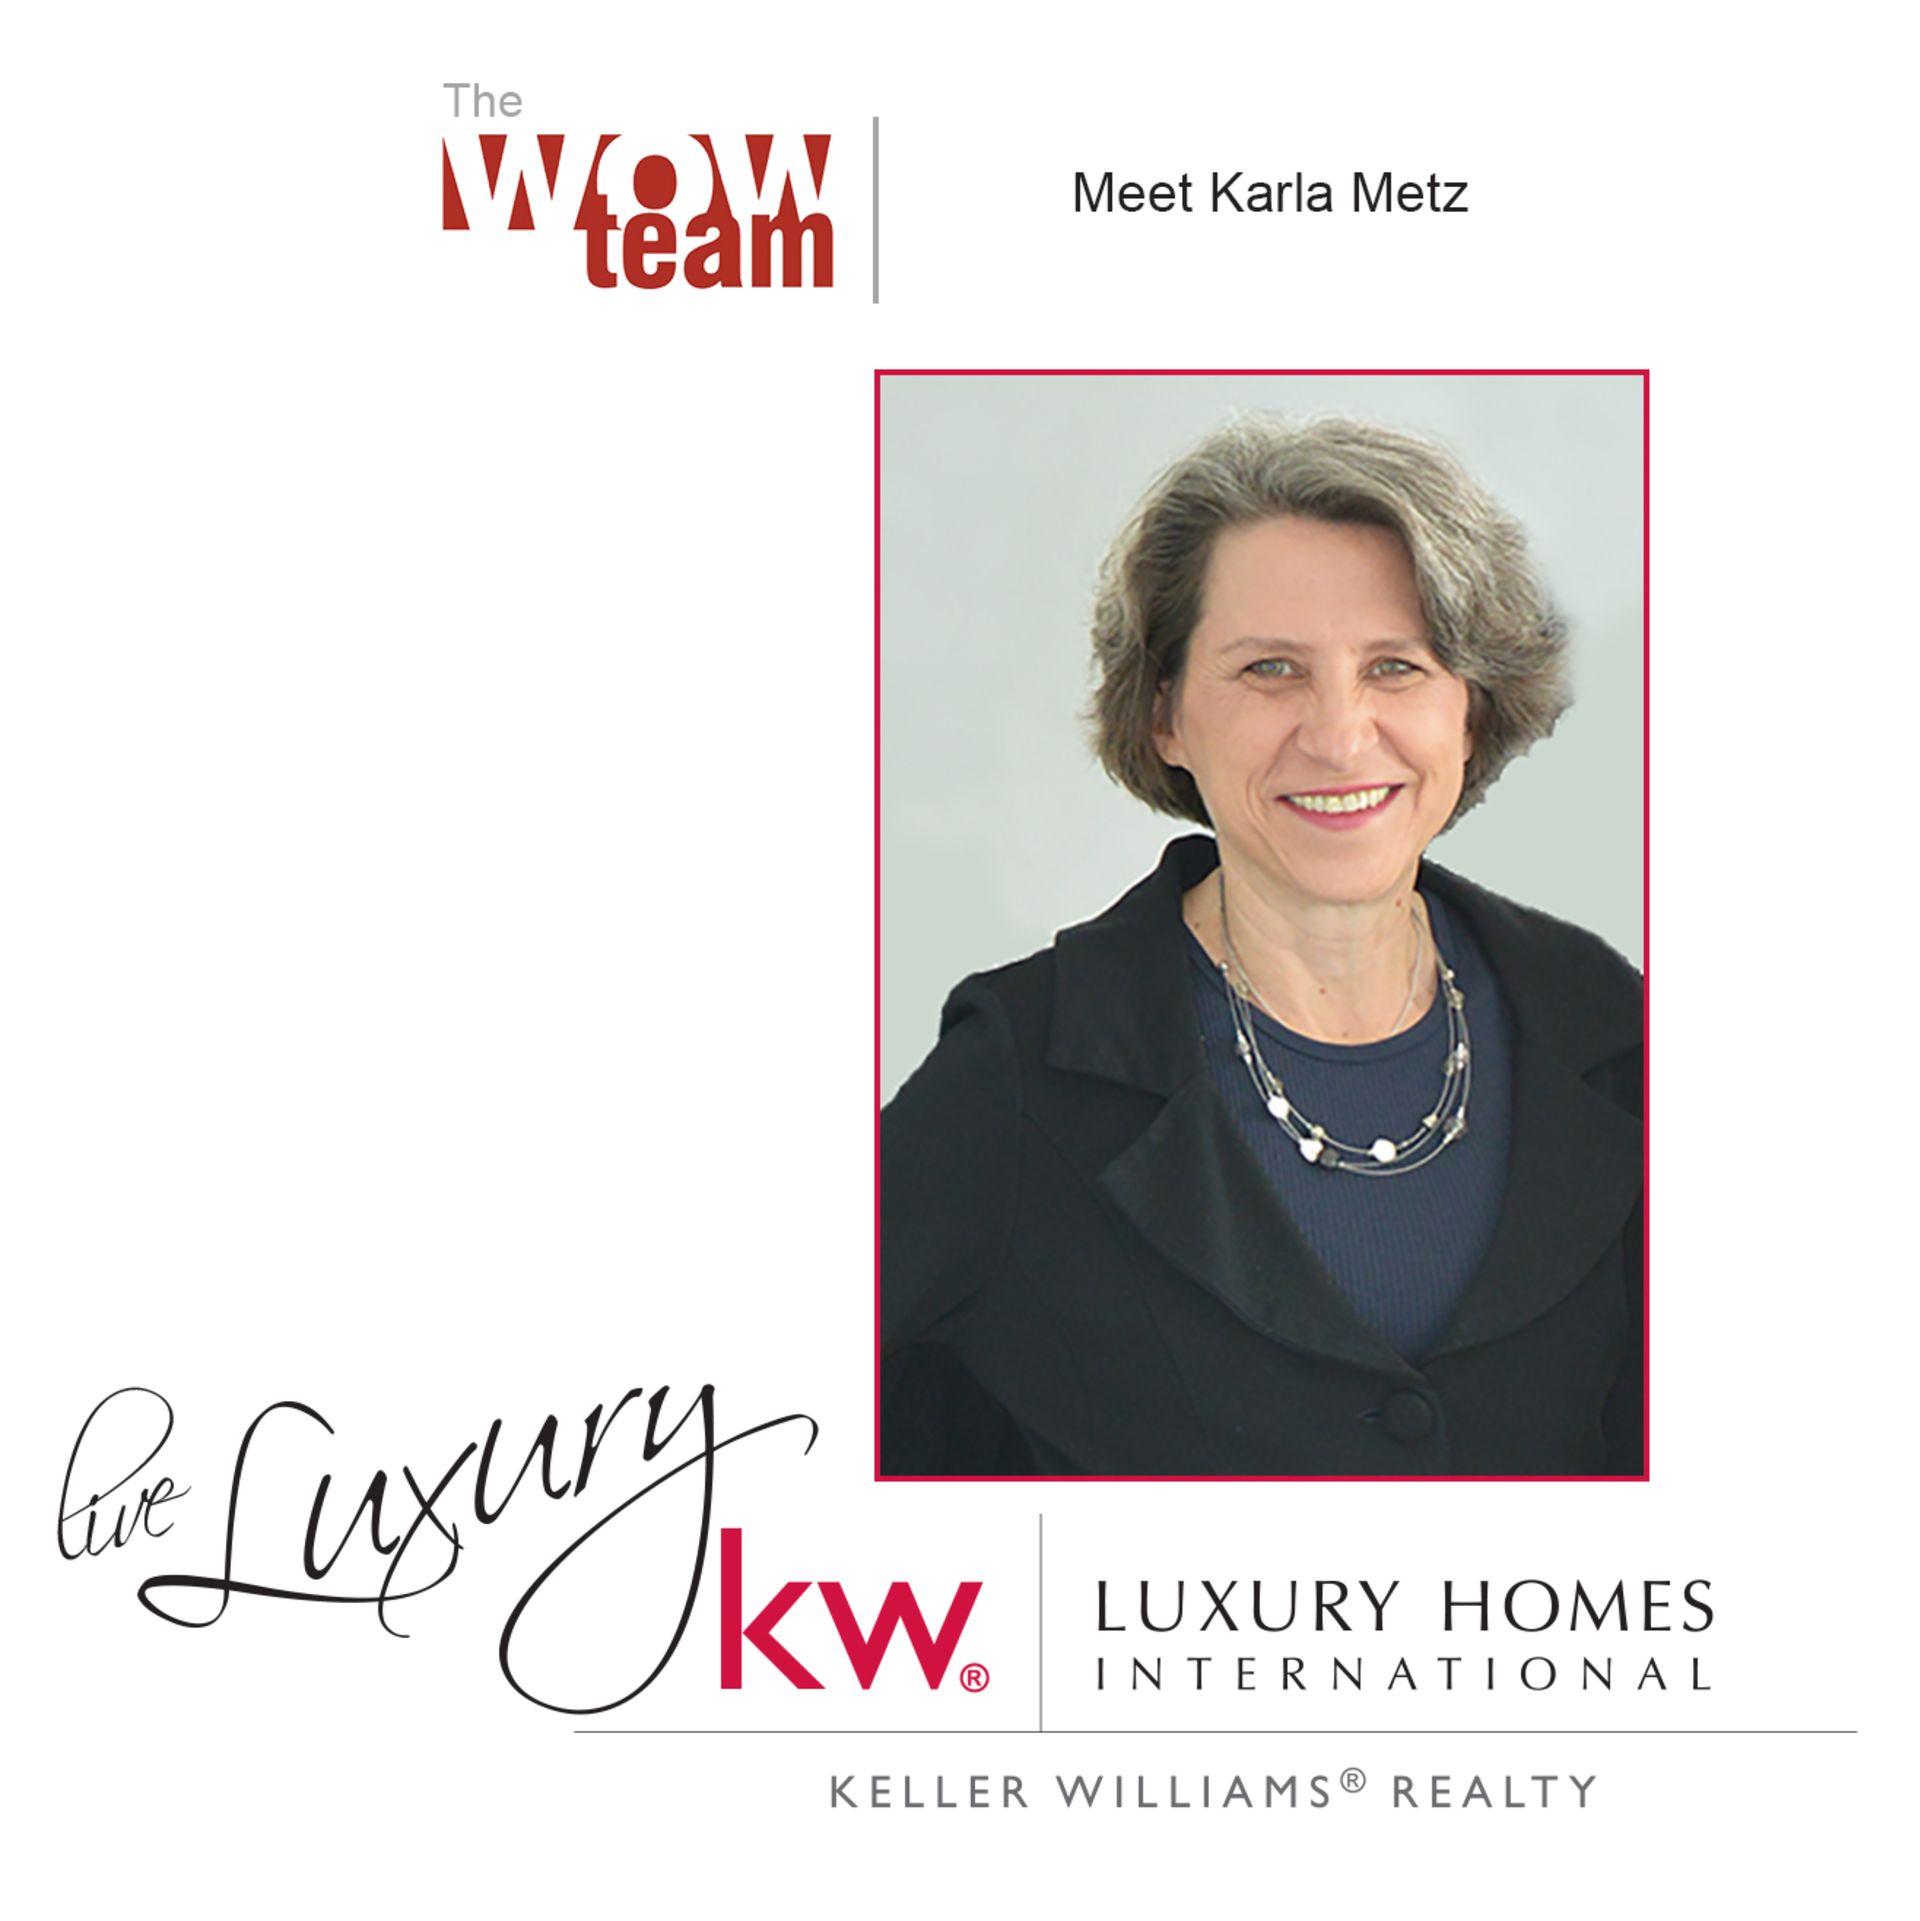 Karla Metz – Our WOW Team Charlie